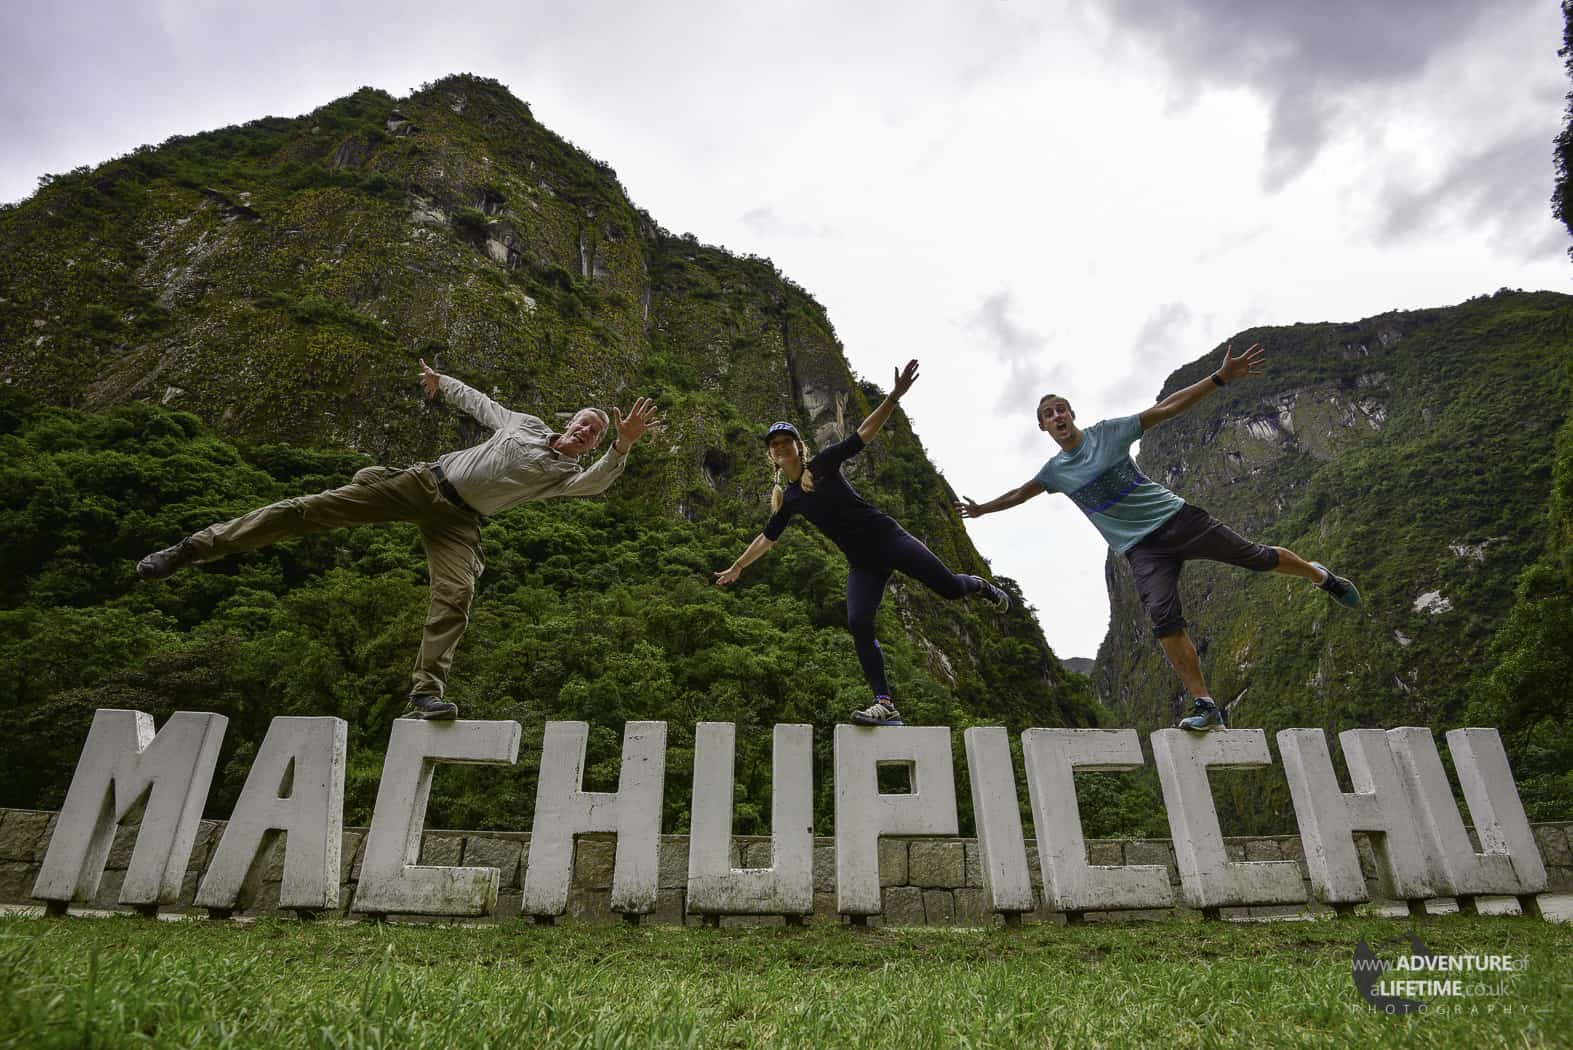 Michael, Dora & Malcolm Aldridge at Machu Picchu